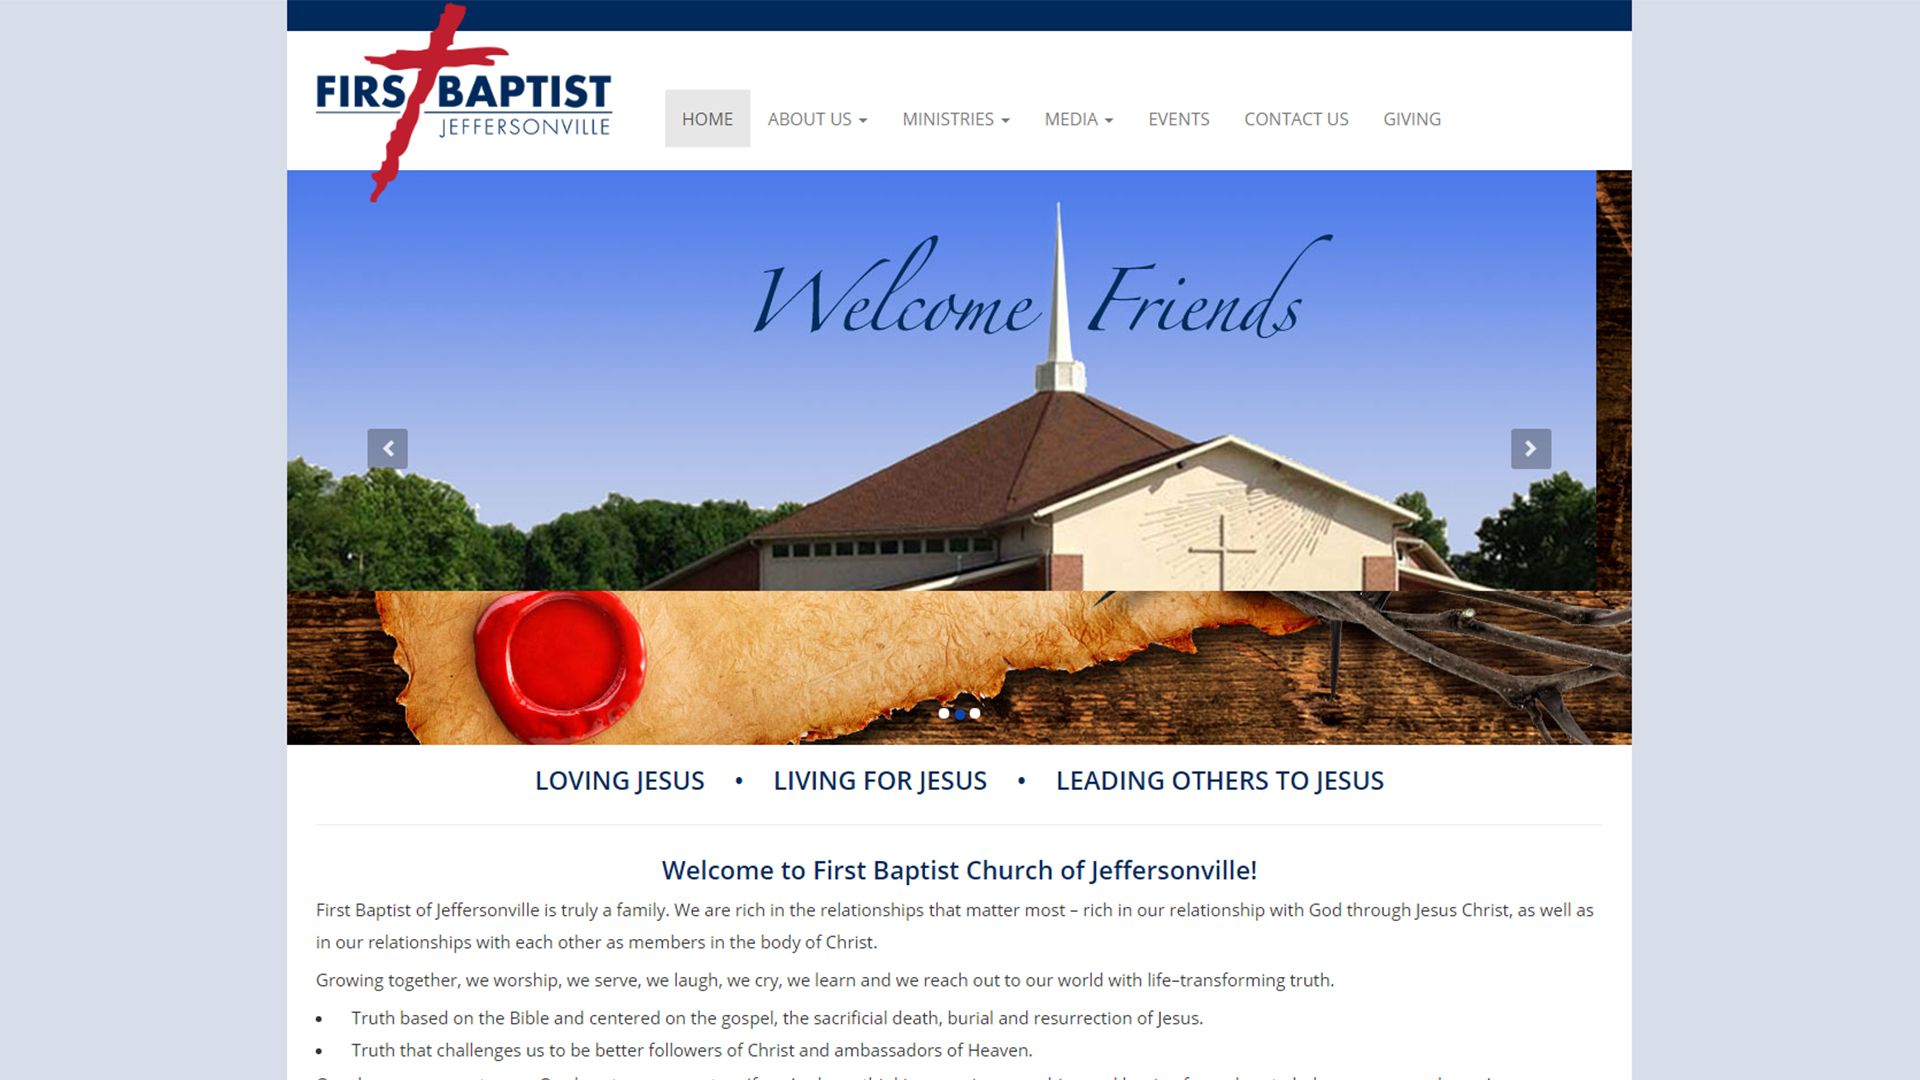 First Baptist Church of Jeffersonville